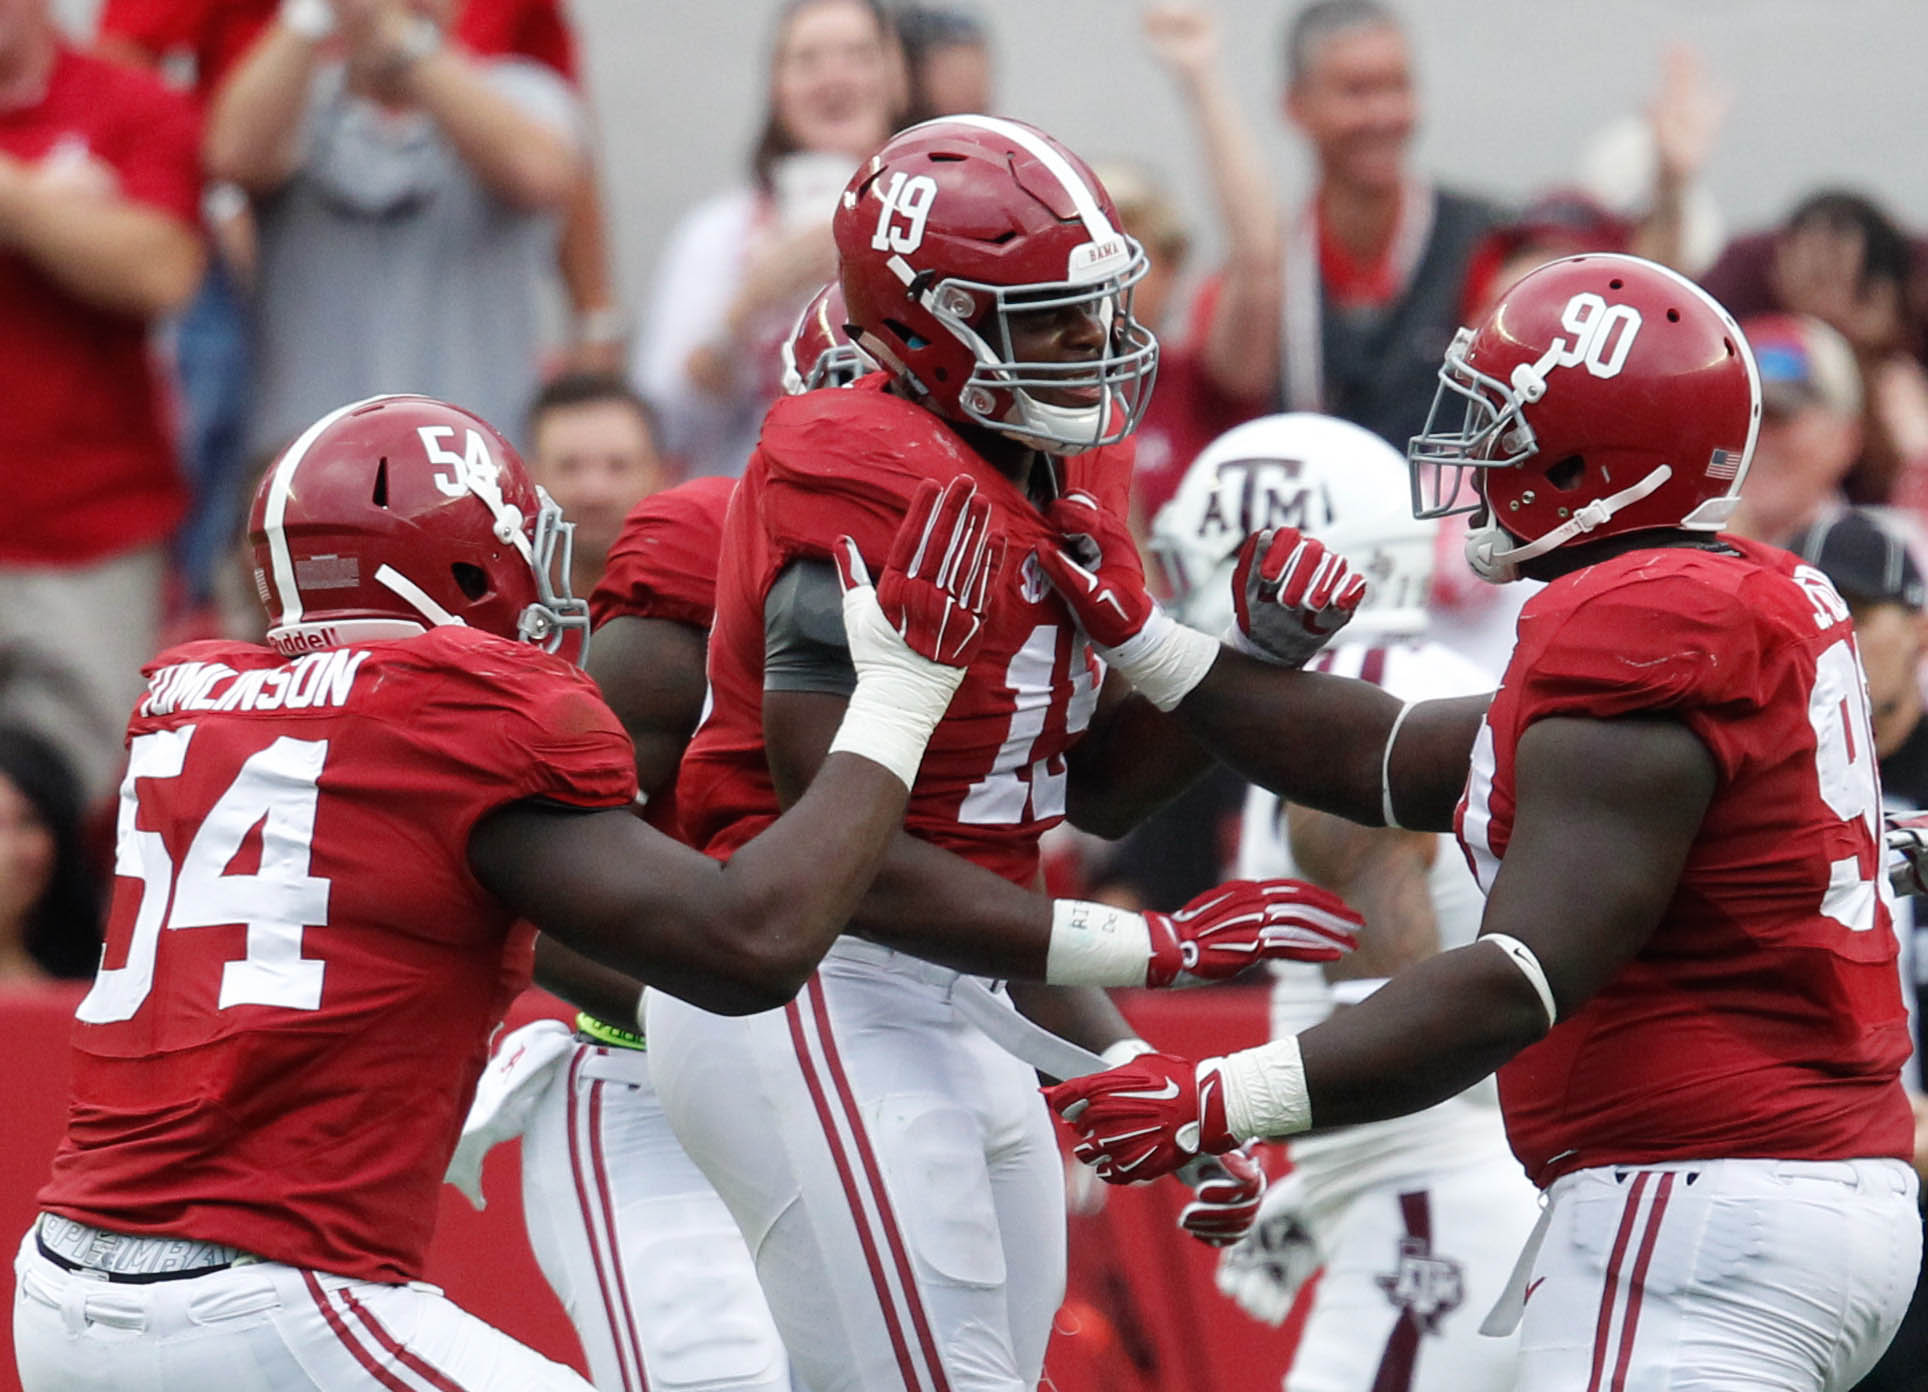 Alabama players celebrate an interception against Texas A&M. (Marvin Gentry, USA TODAY Sports)